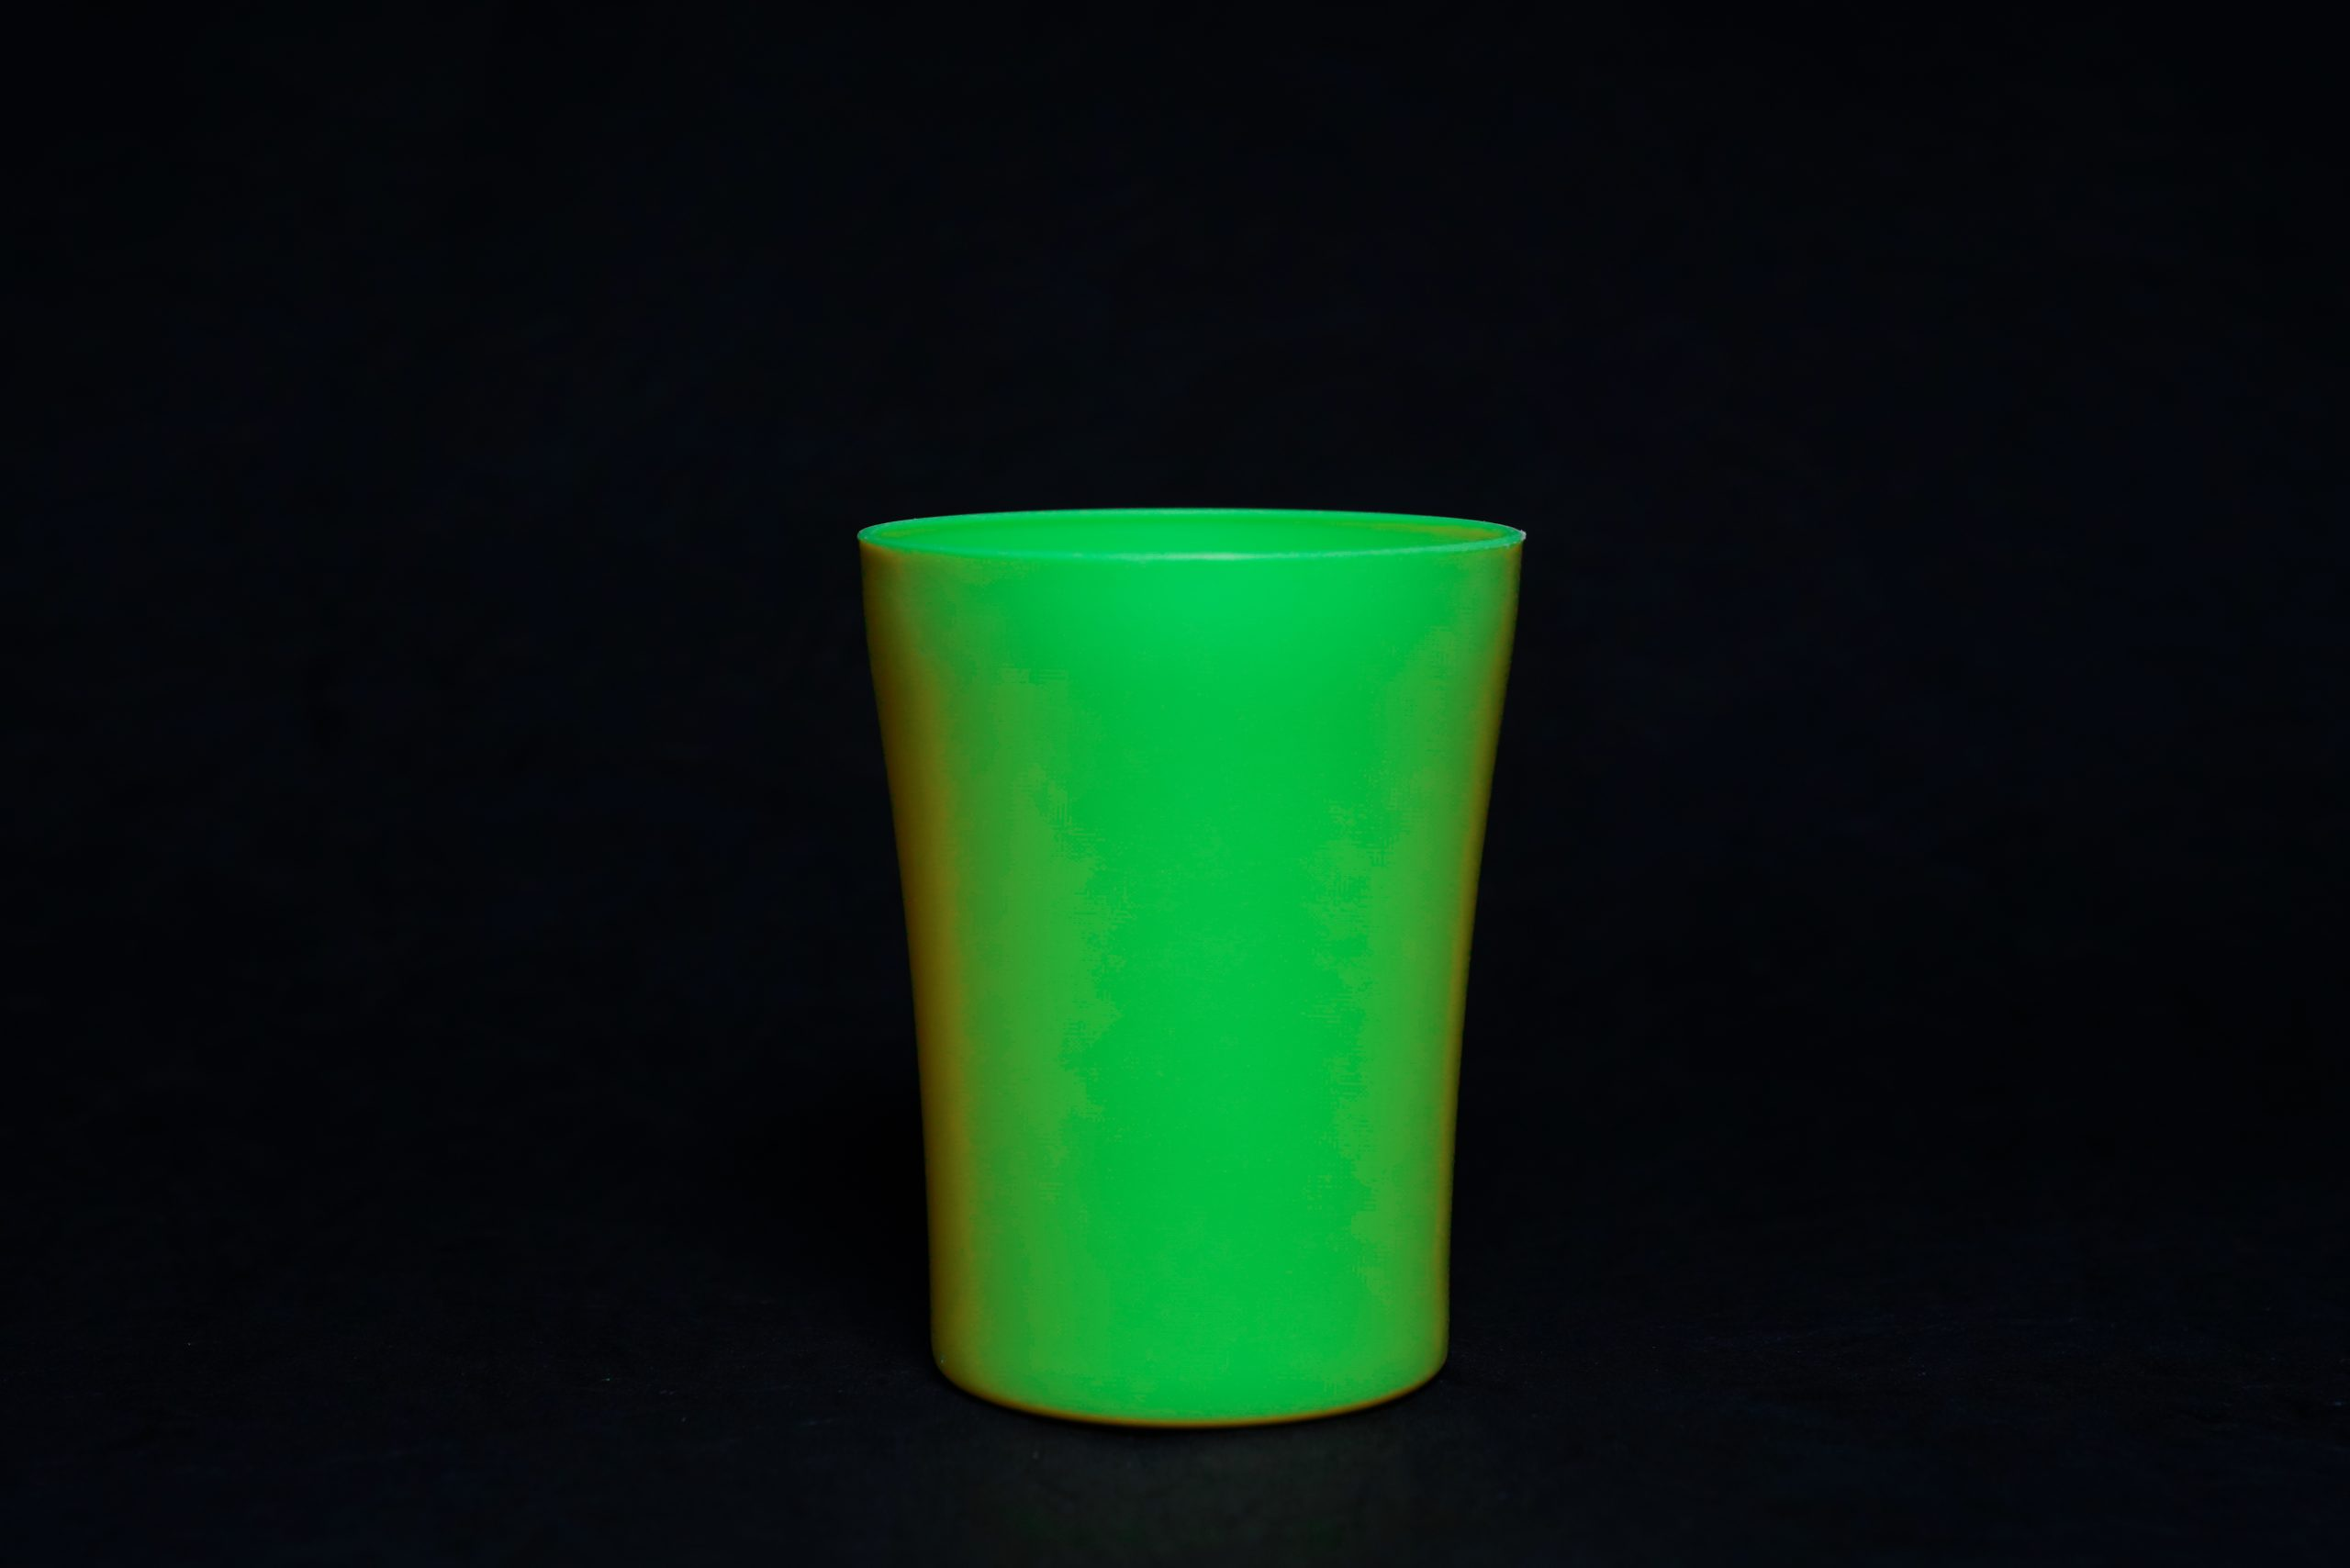 A green glass with black background